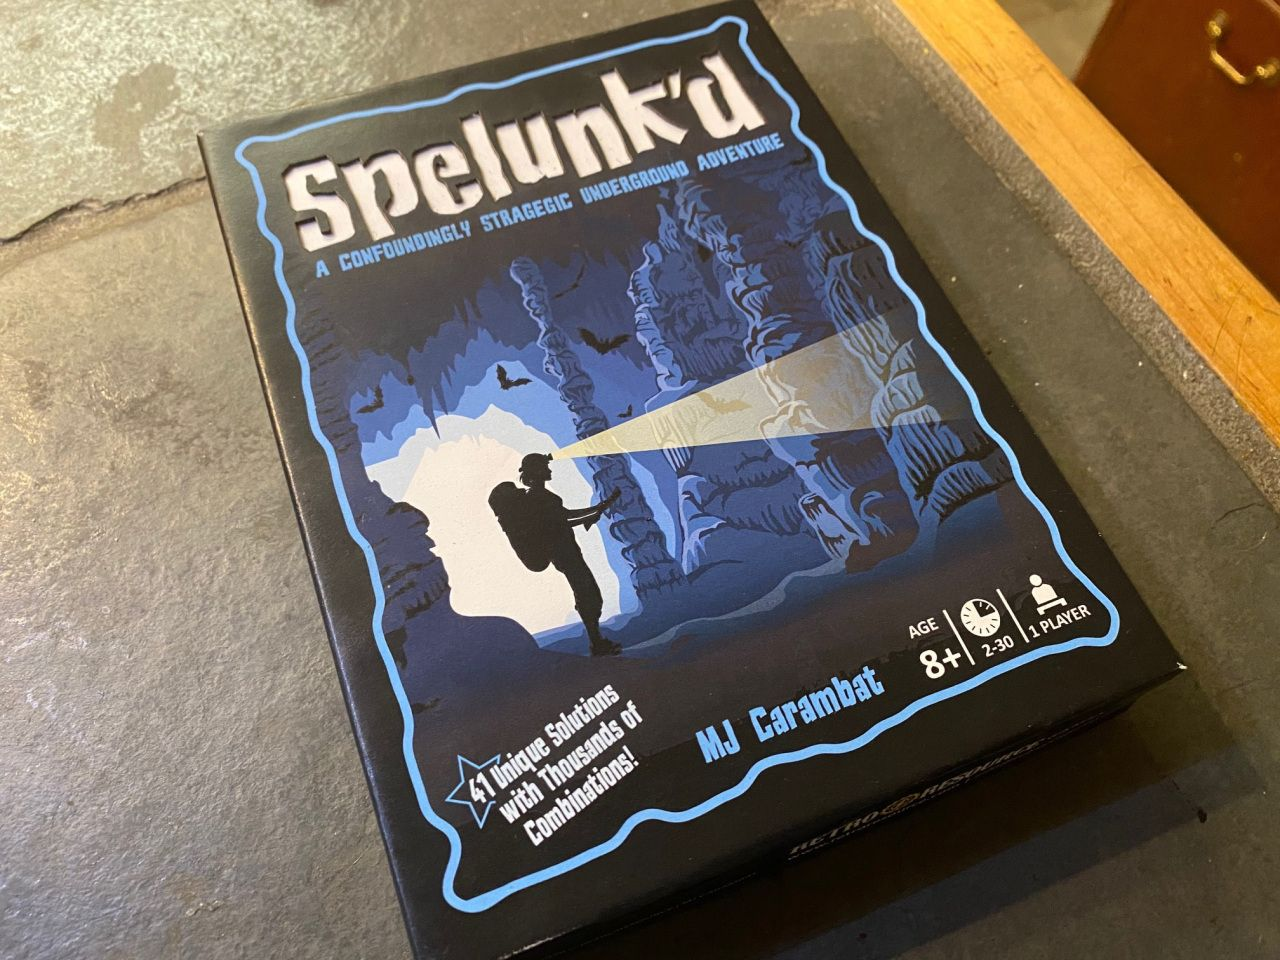 Spelunk'd: A Confoundedly Strategic Underground Adventure